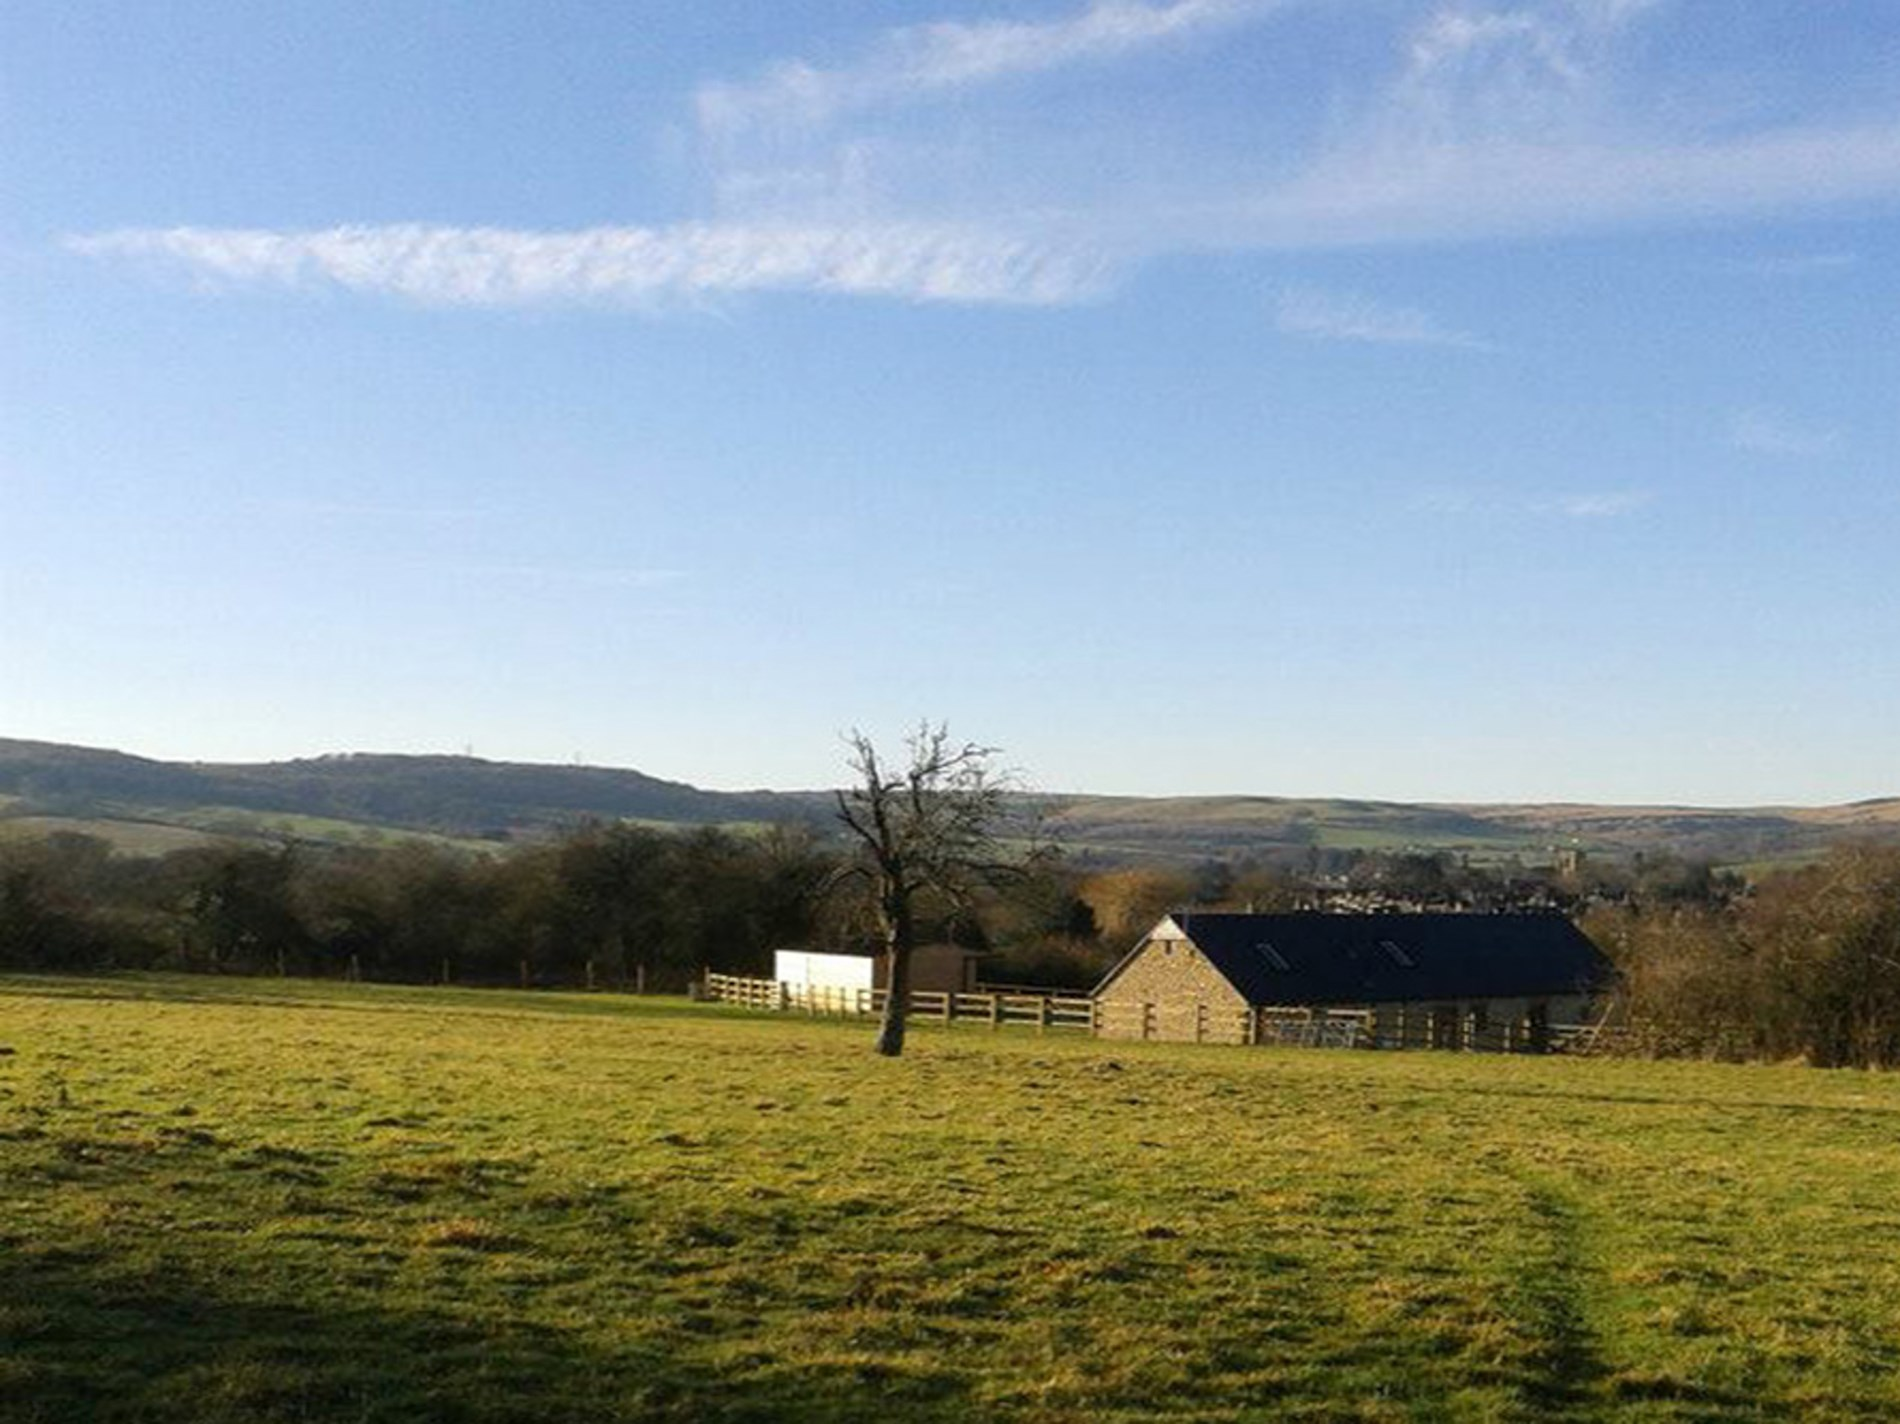 View towards the property and far reaching views